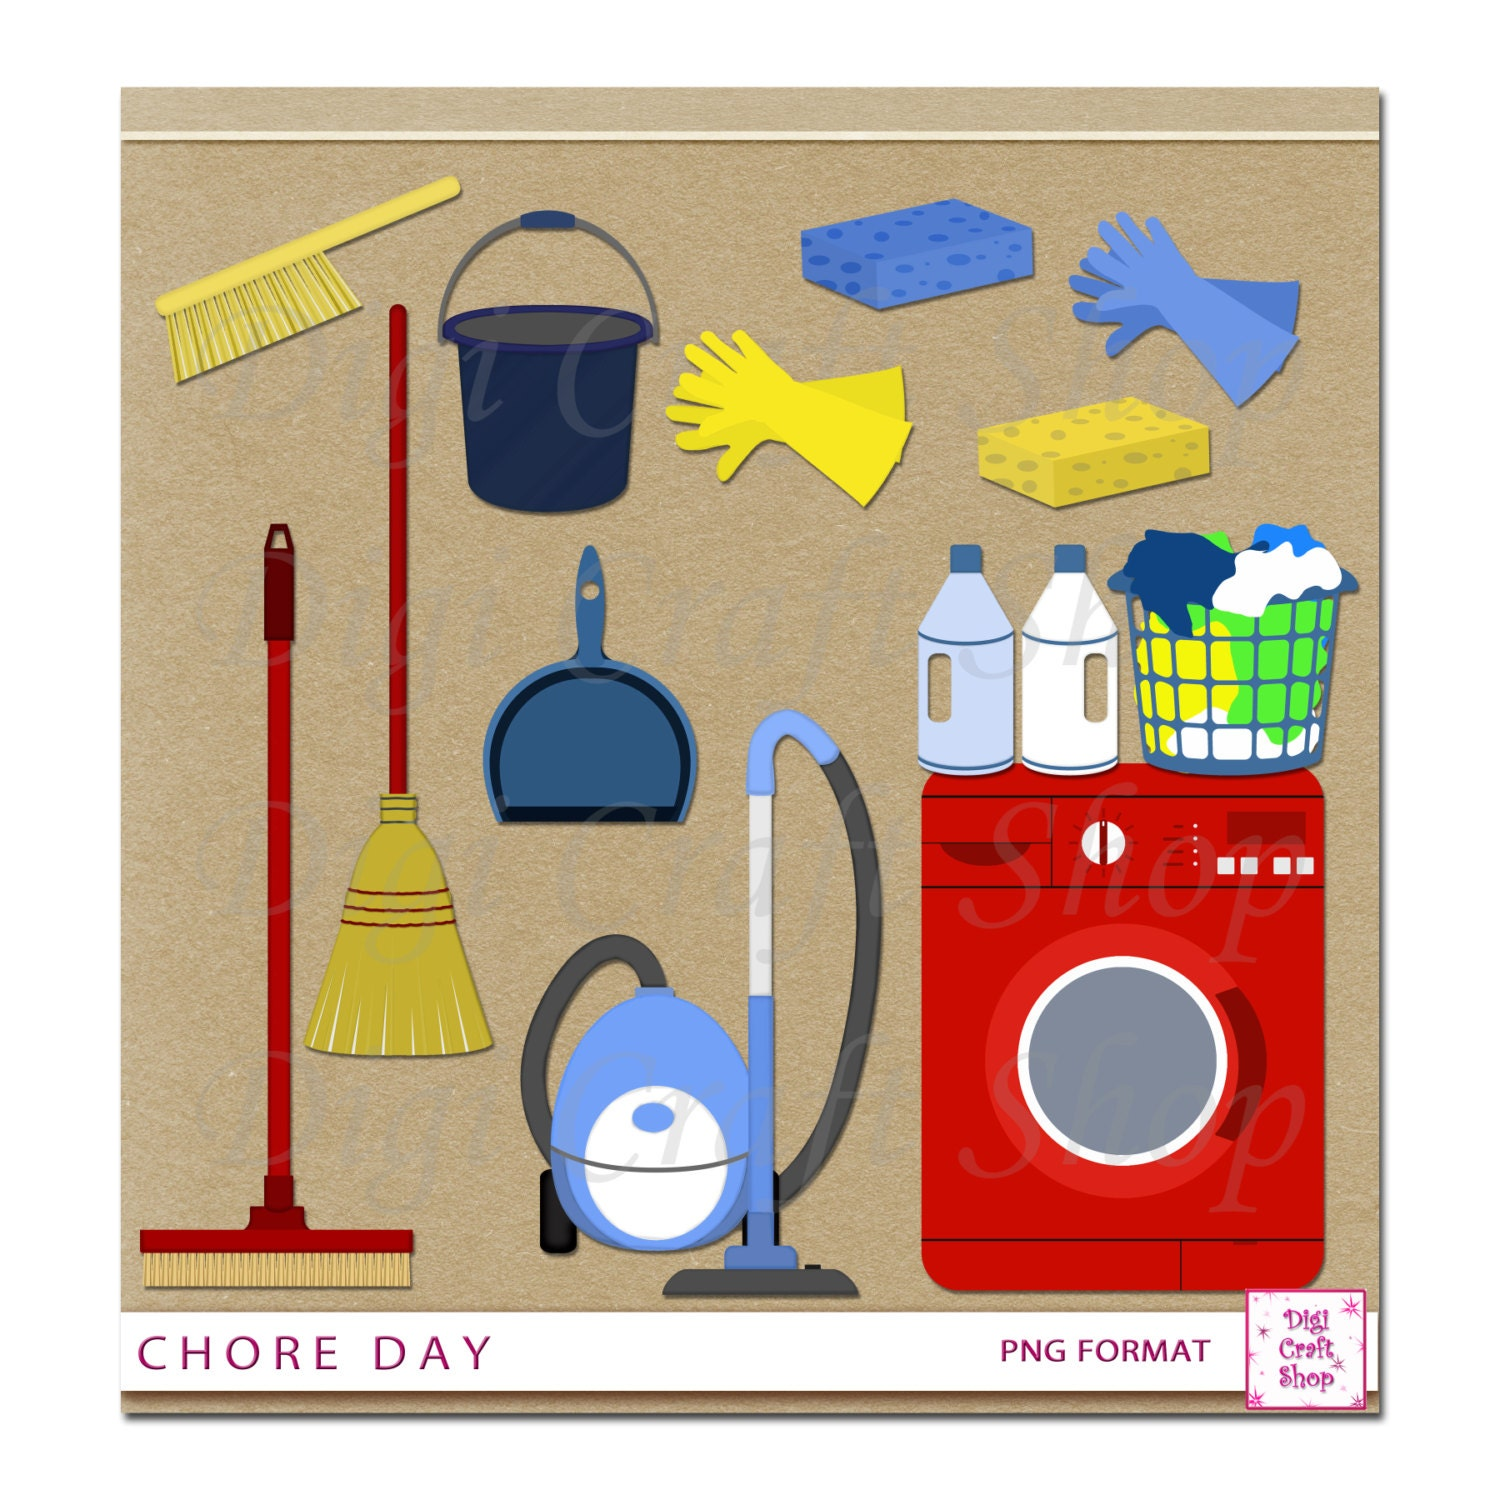 Vacuum cleaner clipart vacuum cleaner clip art -  Zoom